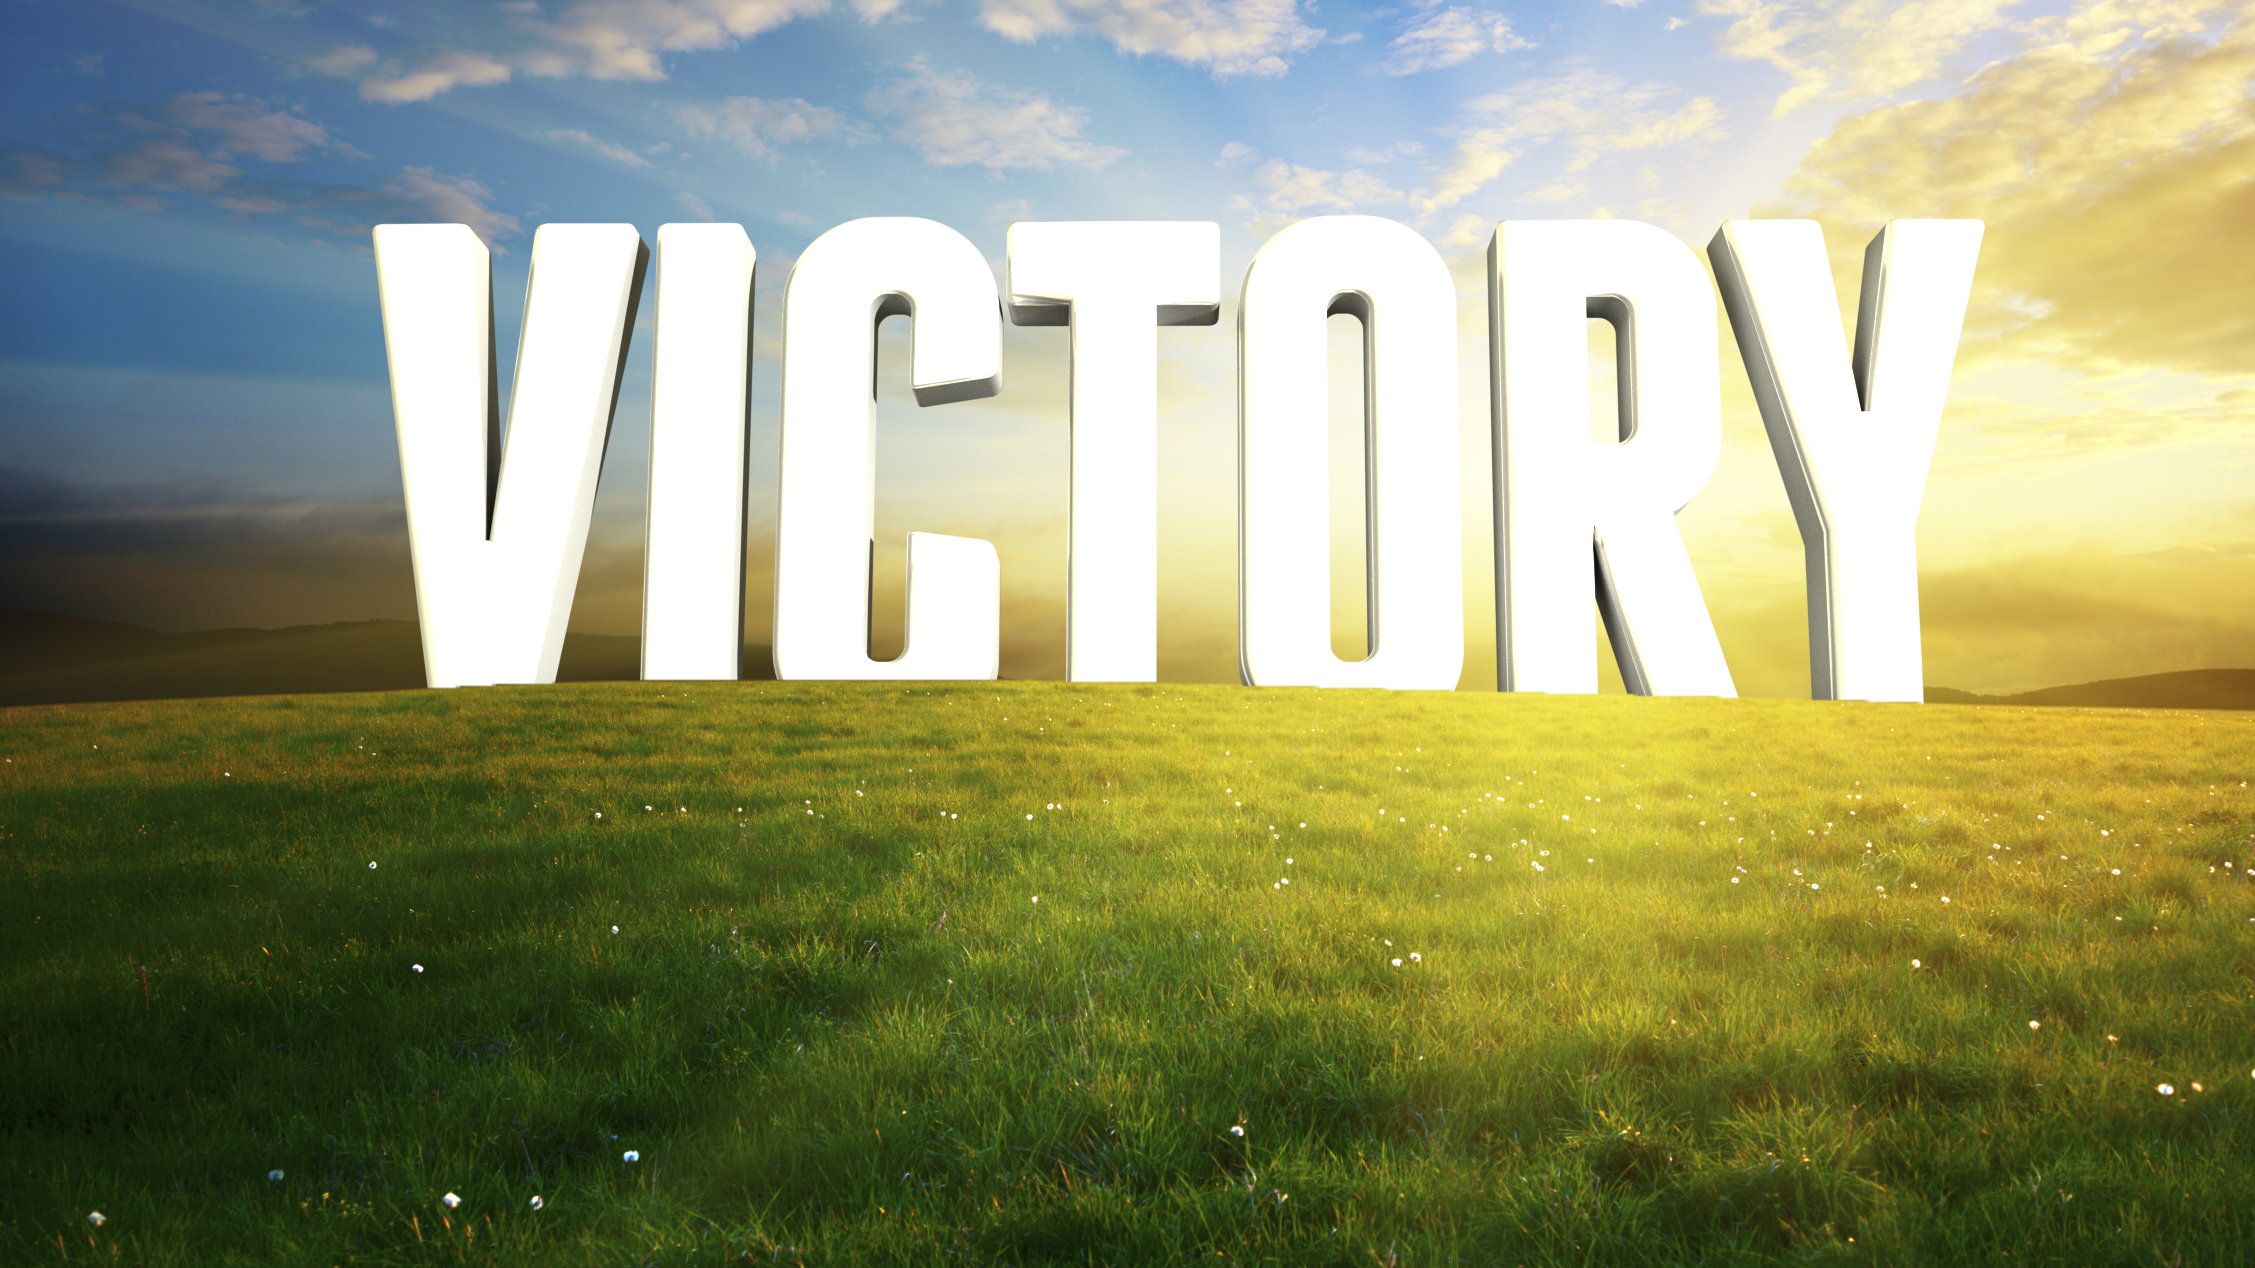 VICTORY Is In Sight! – Sain Publications